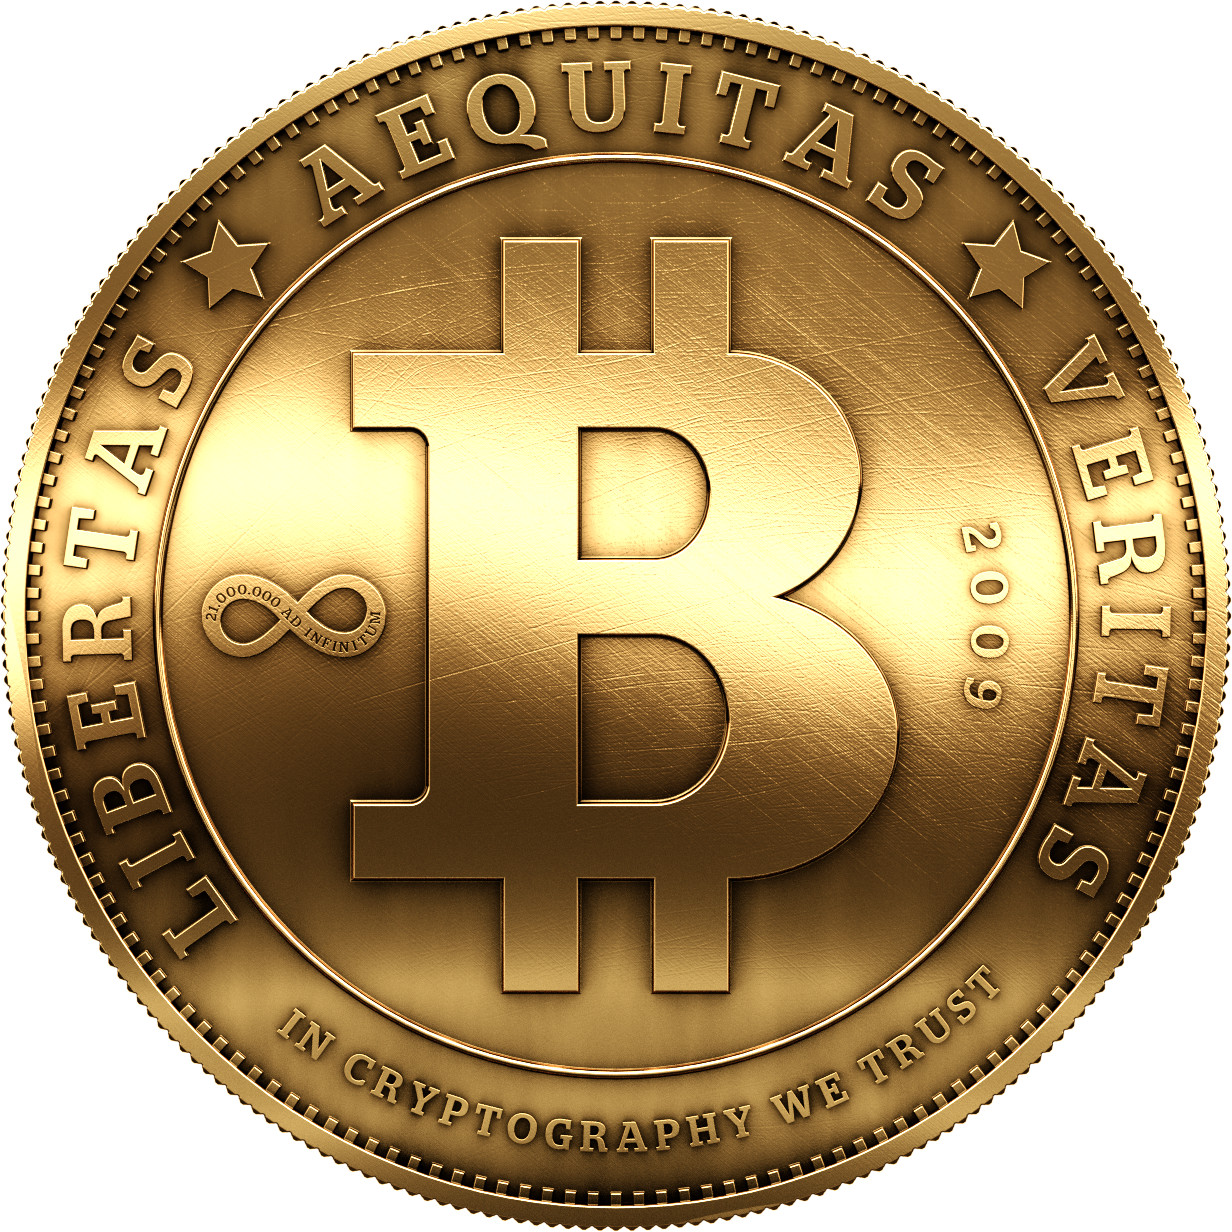 Everything You Ever Wanted To Know About Bitcoins But Were Too Broke To Ask!